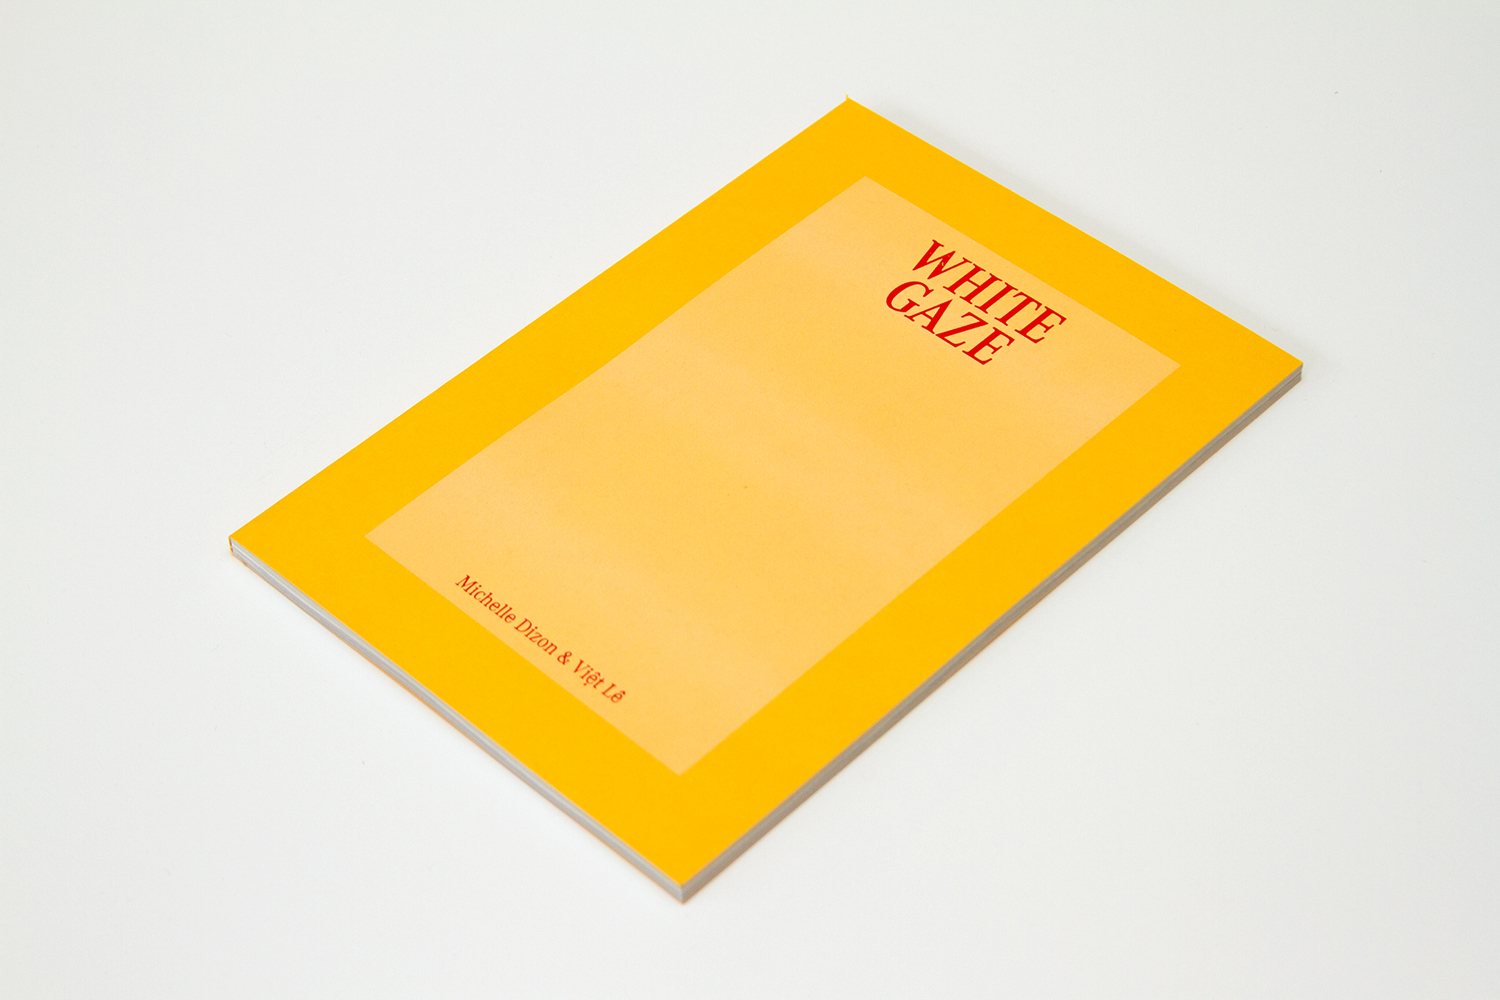 A yellow book with the title, White Gaze